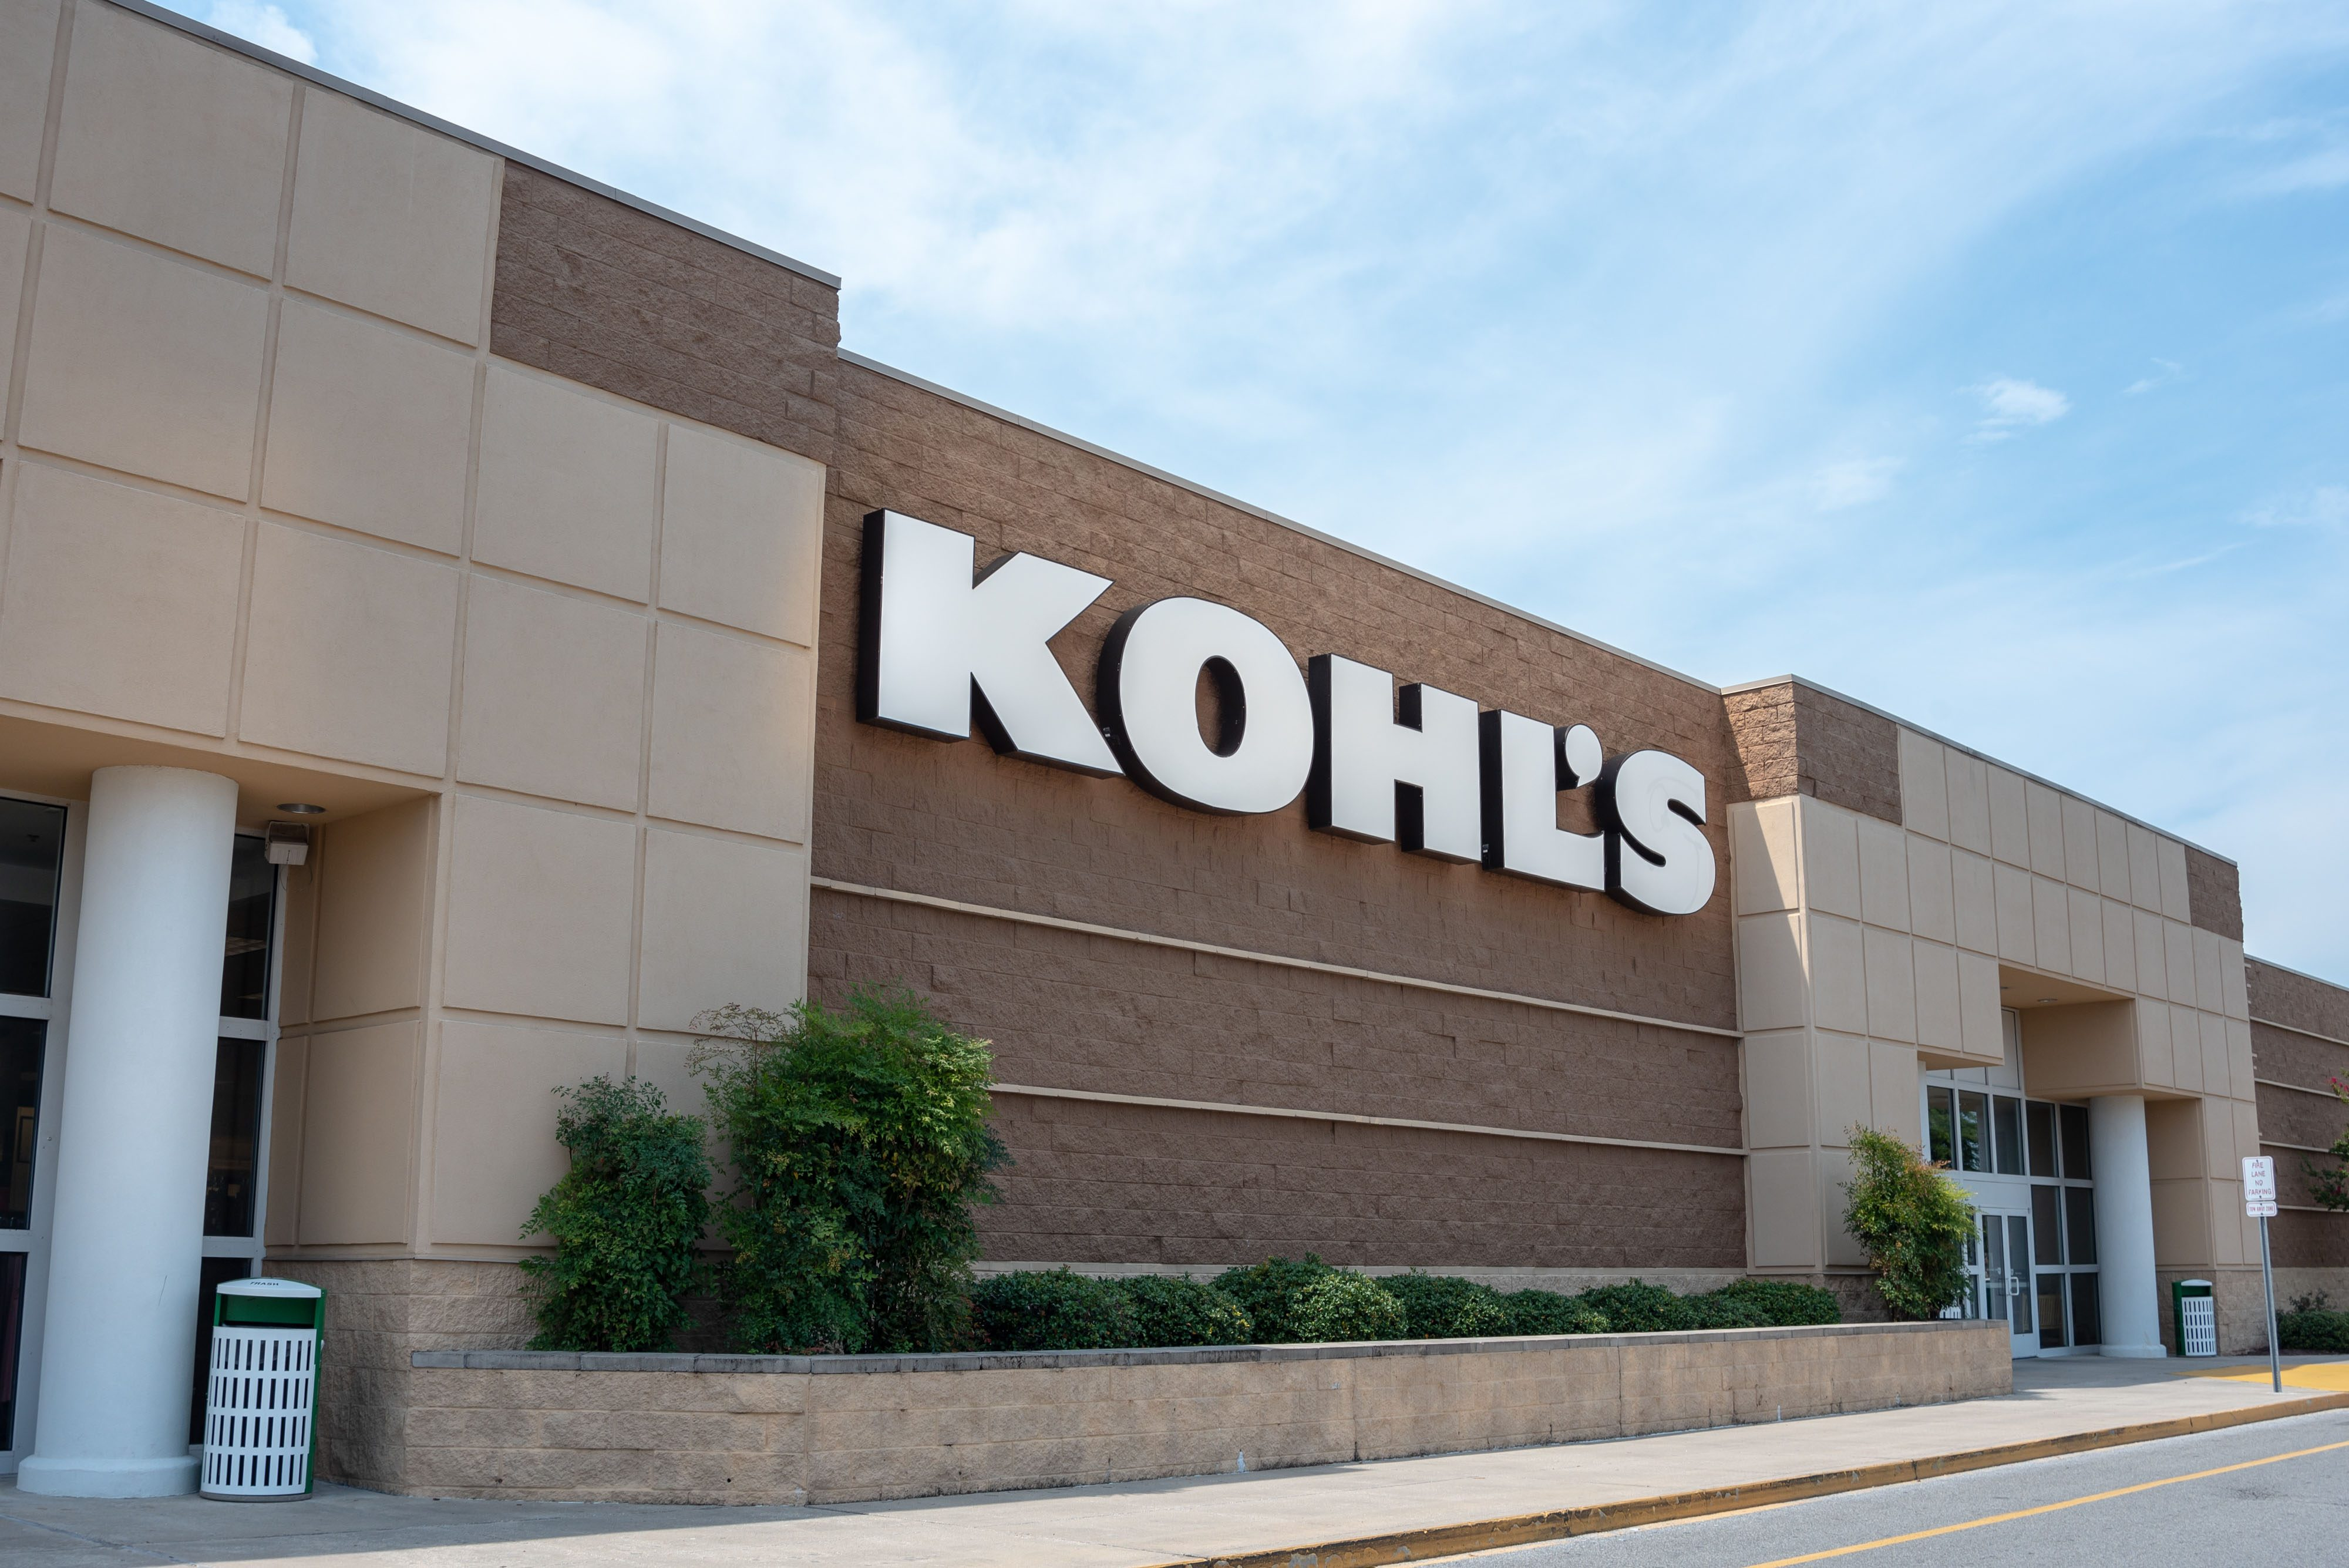 LAFAYETTE, L.A. / USA - SEPTEMBER 8, 2019: Kohl's retail department store exterior sign above the entrance, located in Lafayette, South Louisiana.; Shutterstock ID 1505817617; Job (TFH, TOH, RD, BNB, CWM, CM): TOH What to Buy at Kohl's